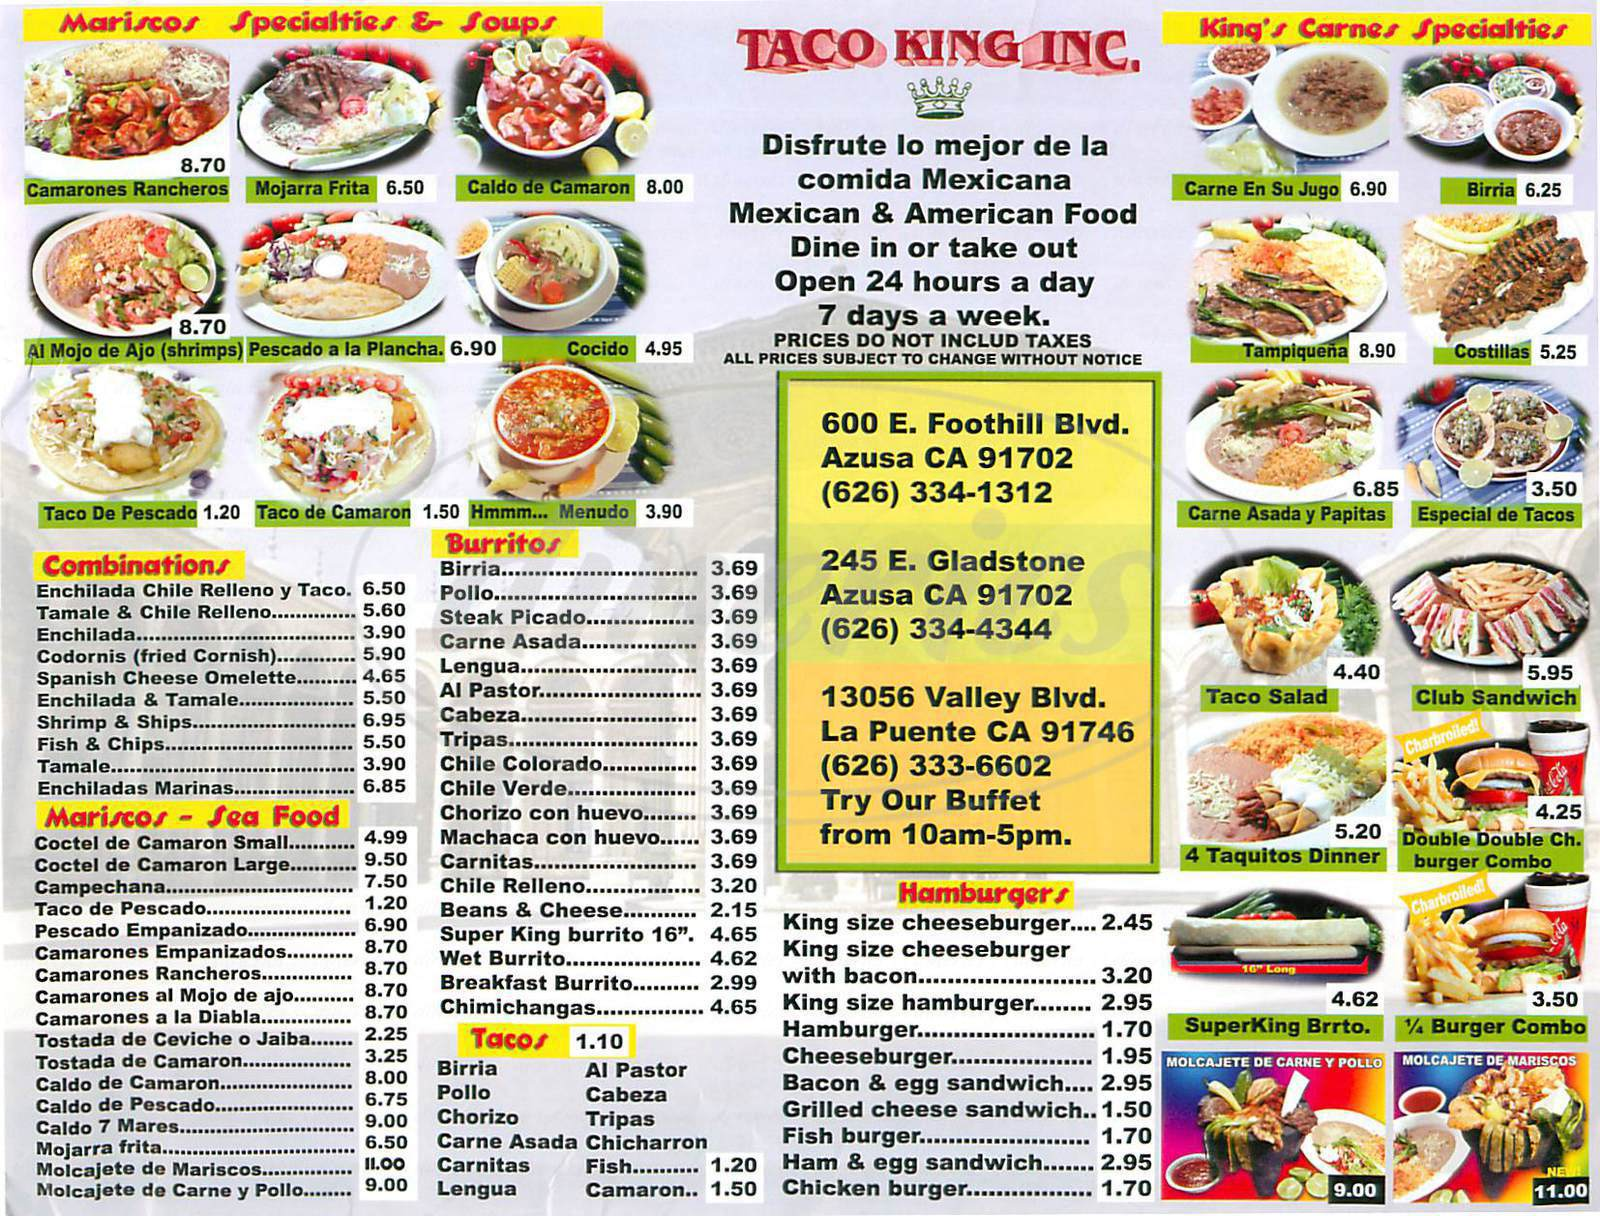 menu for King Taco